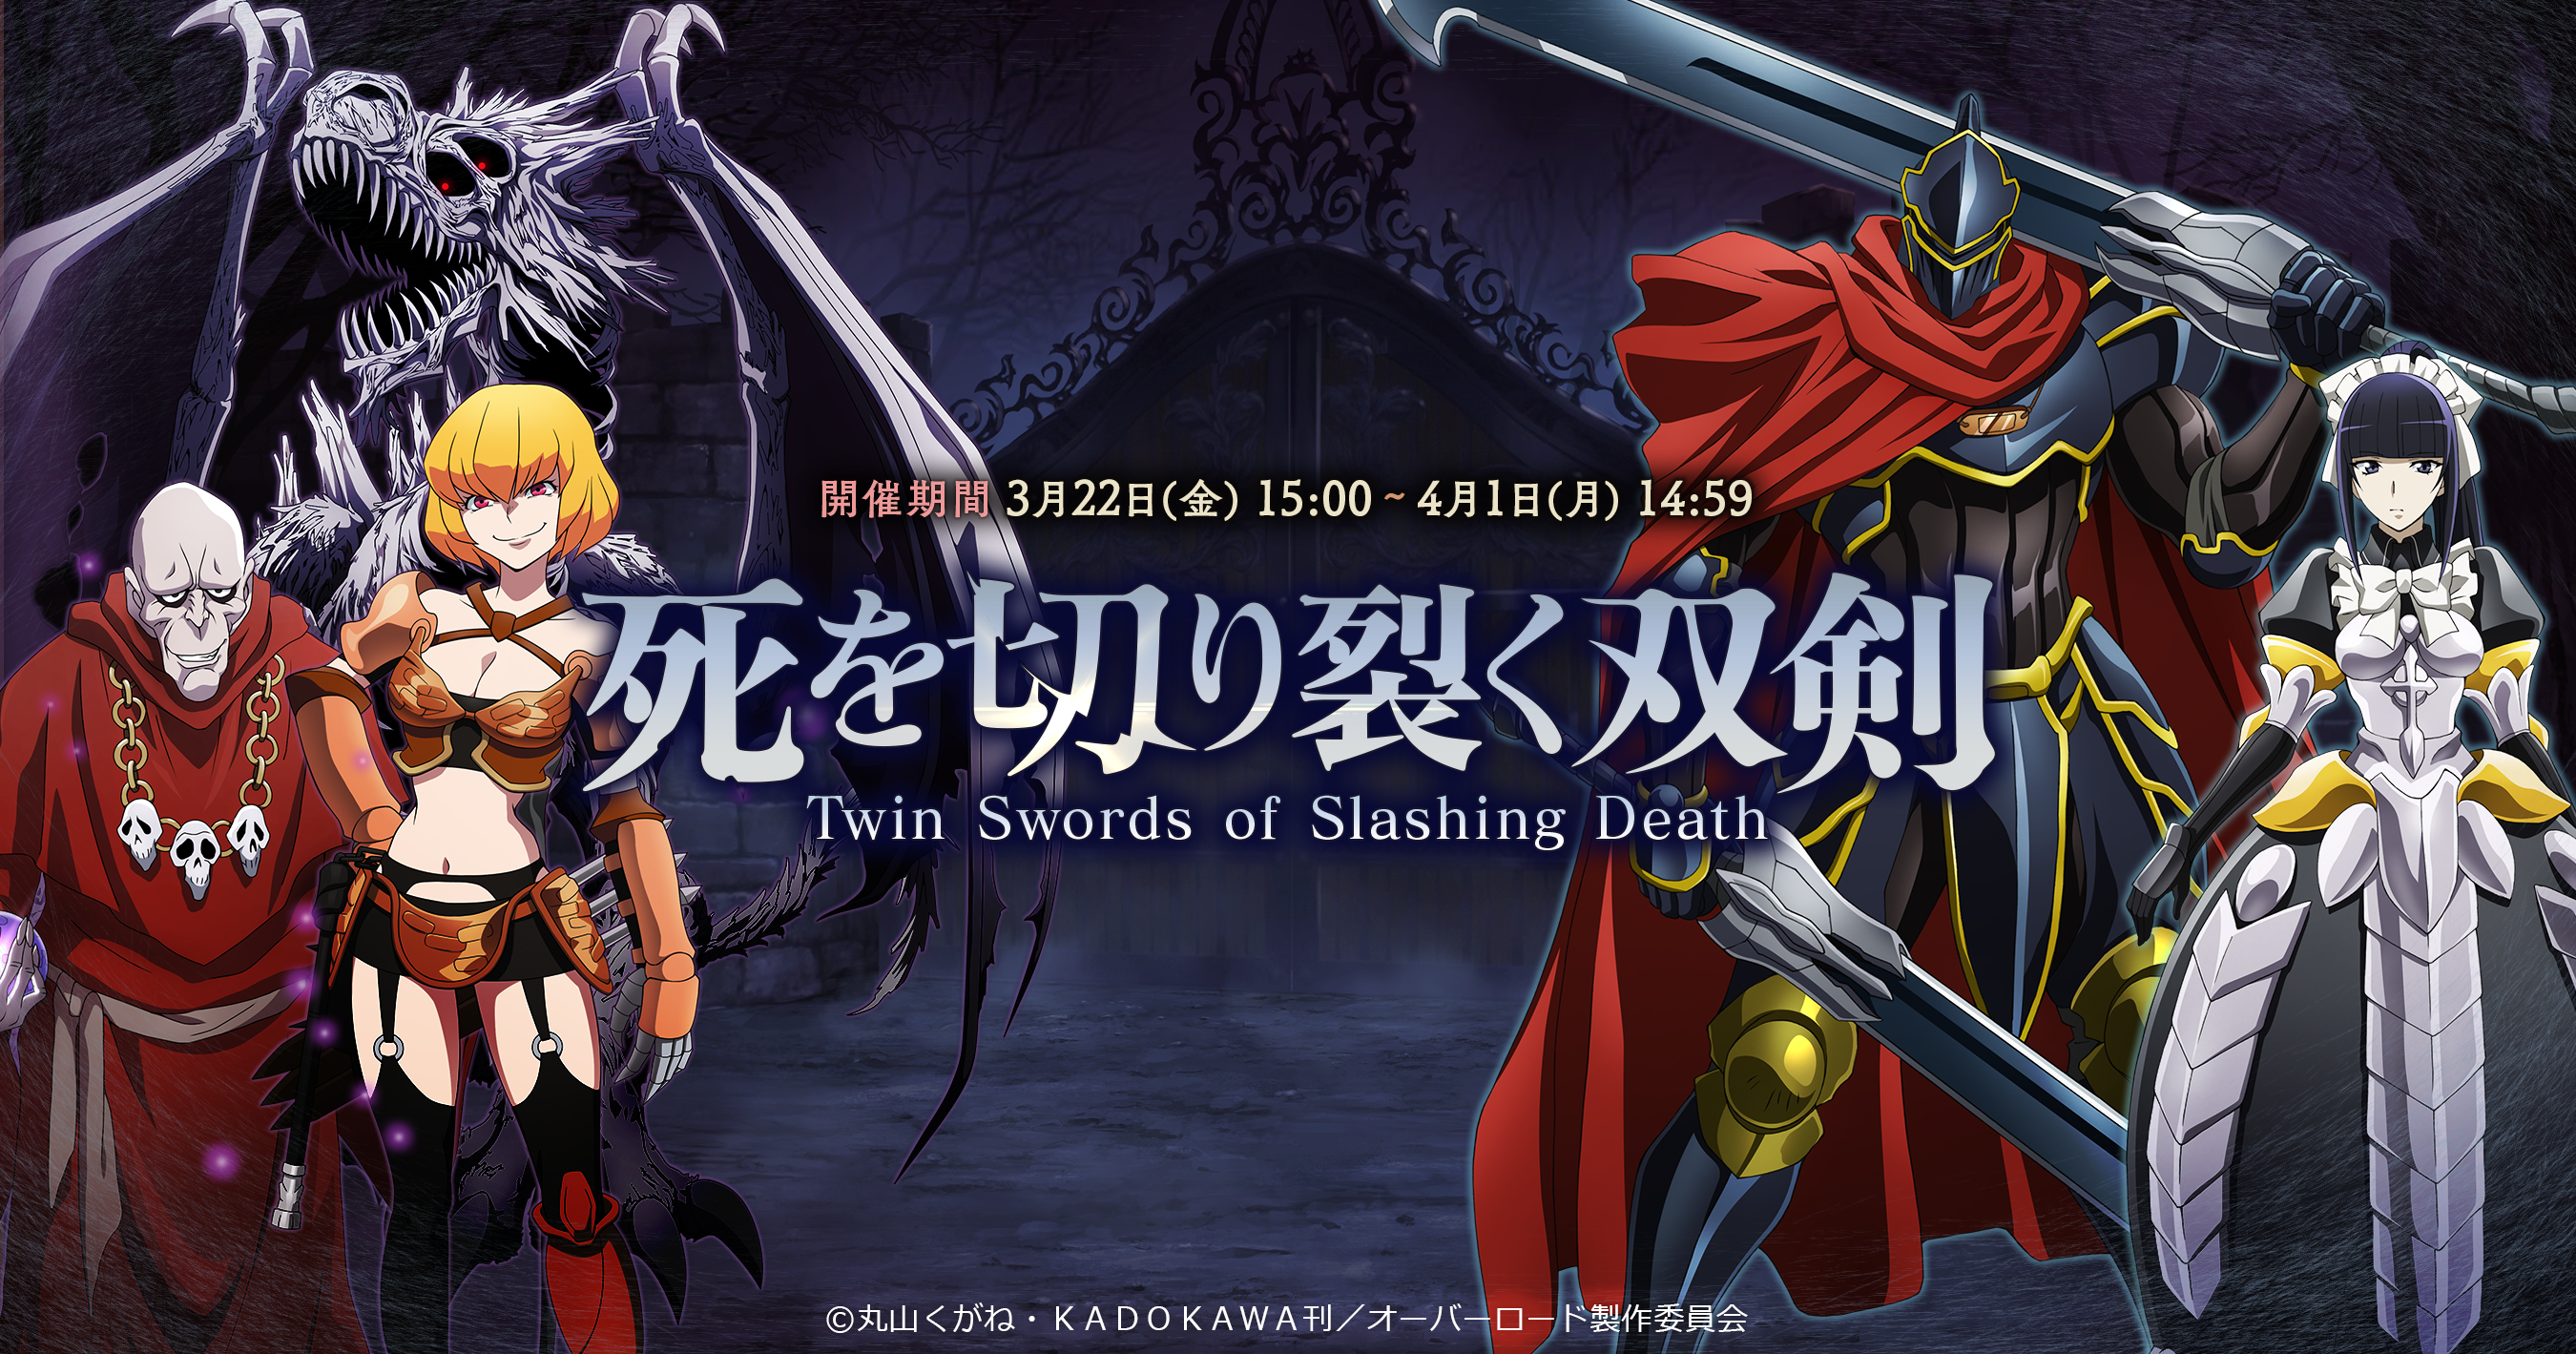 Twin Swords of Slashing Death